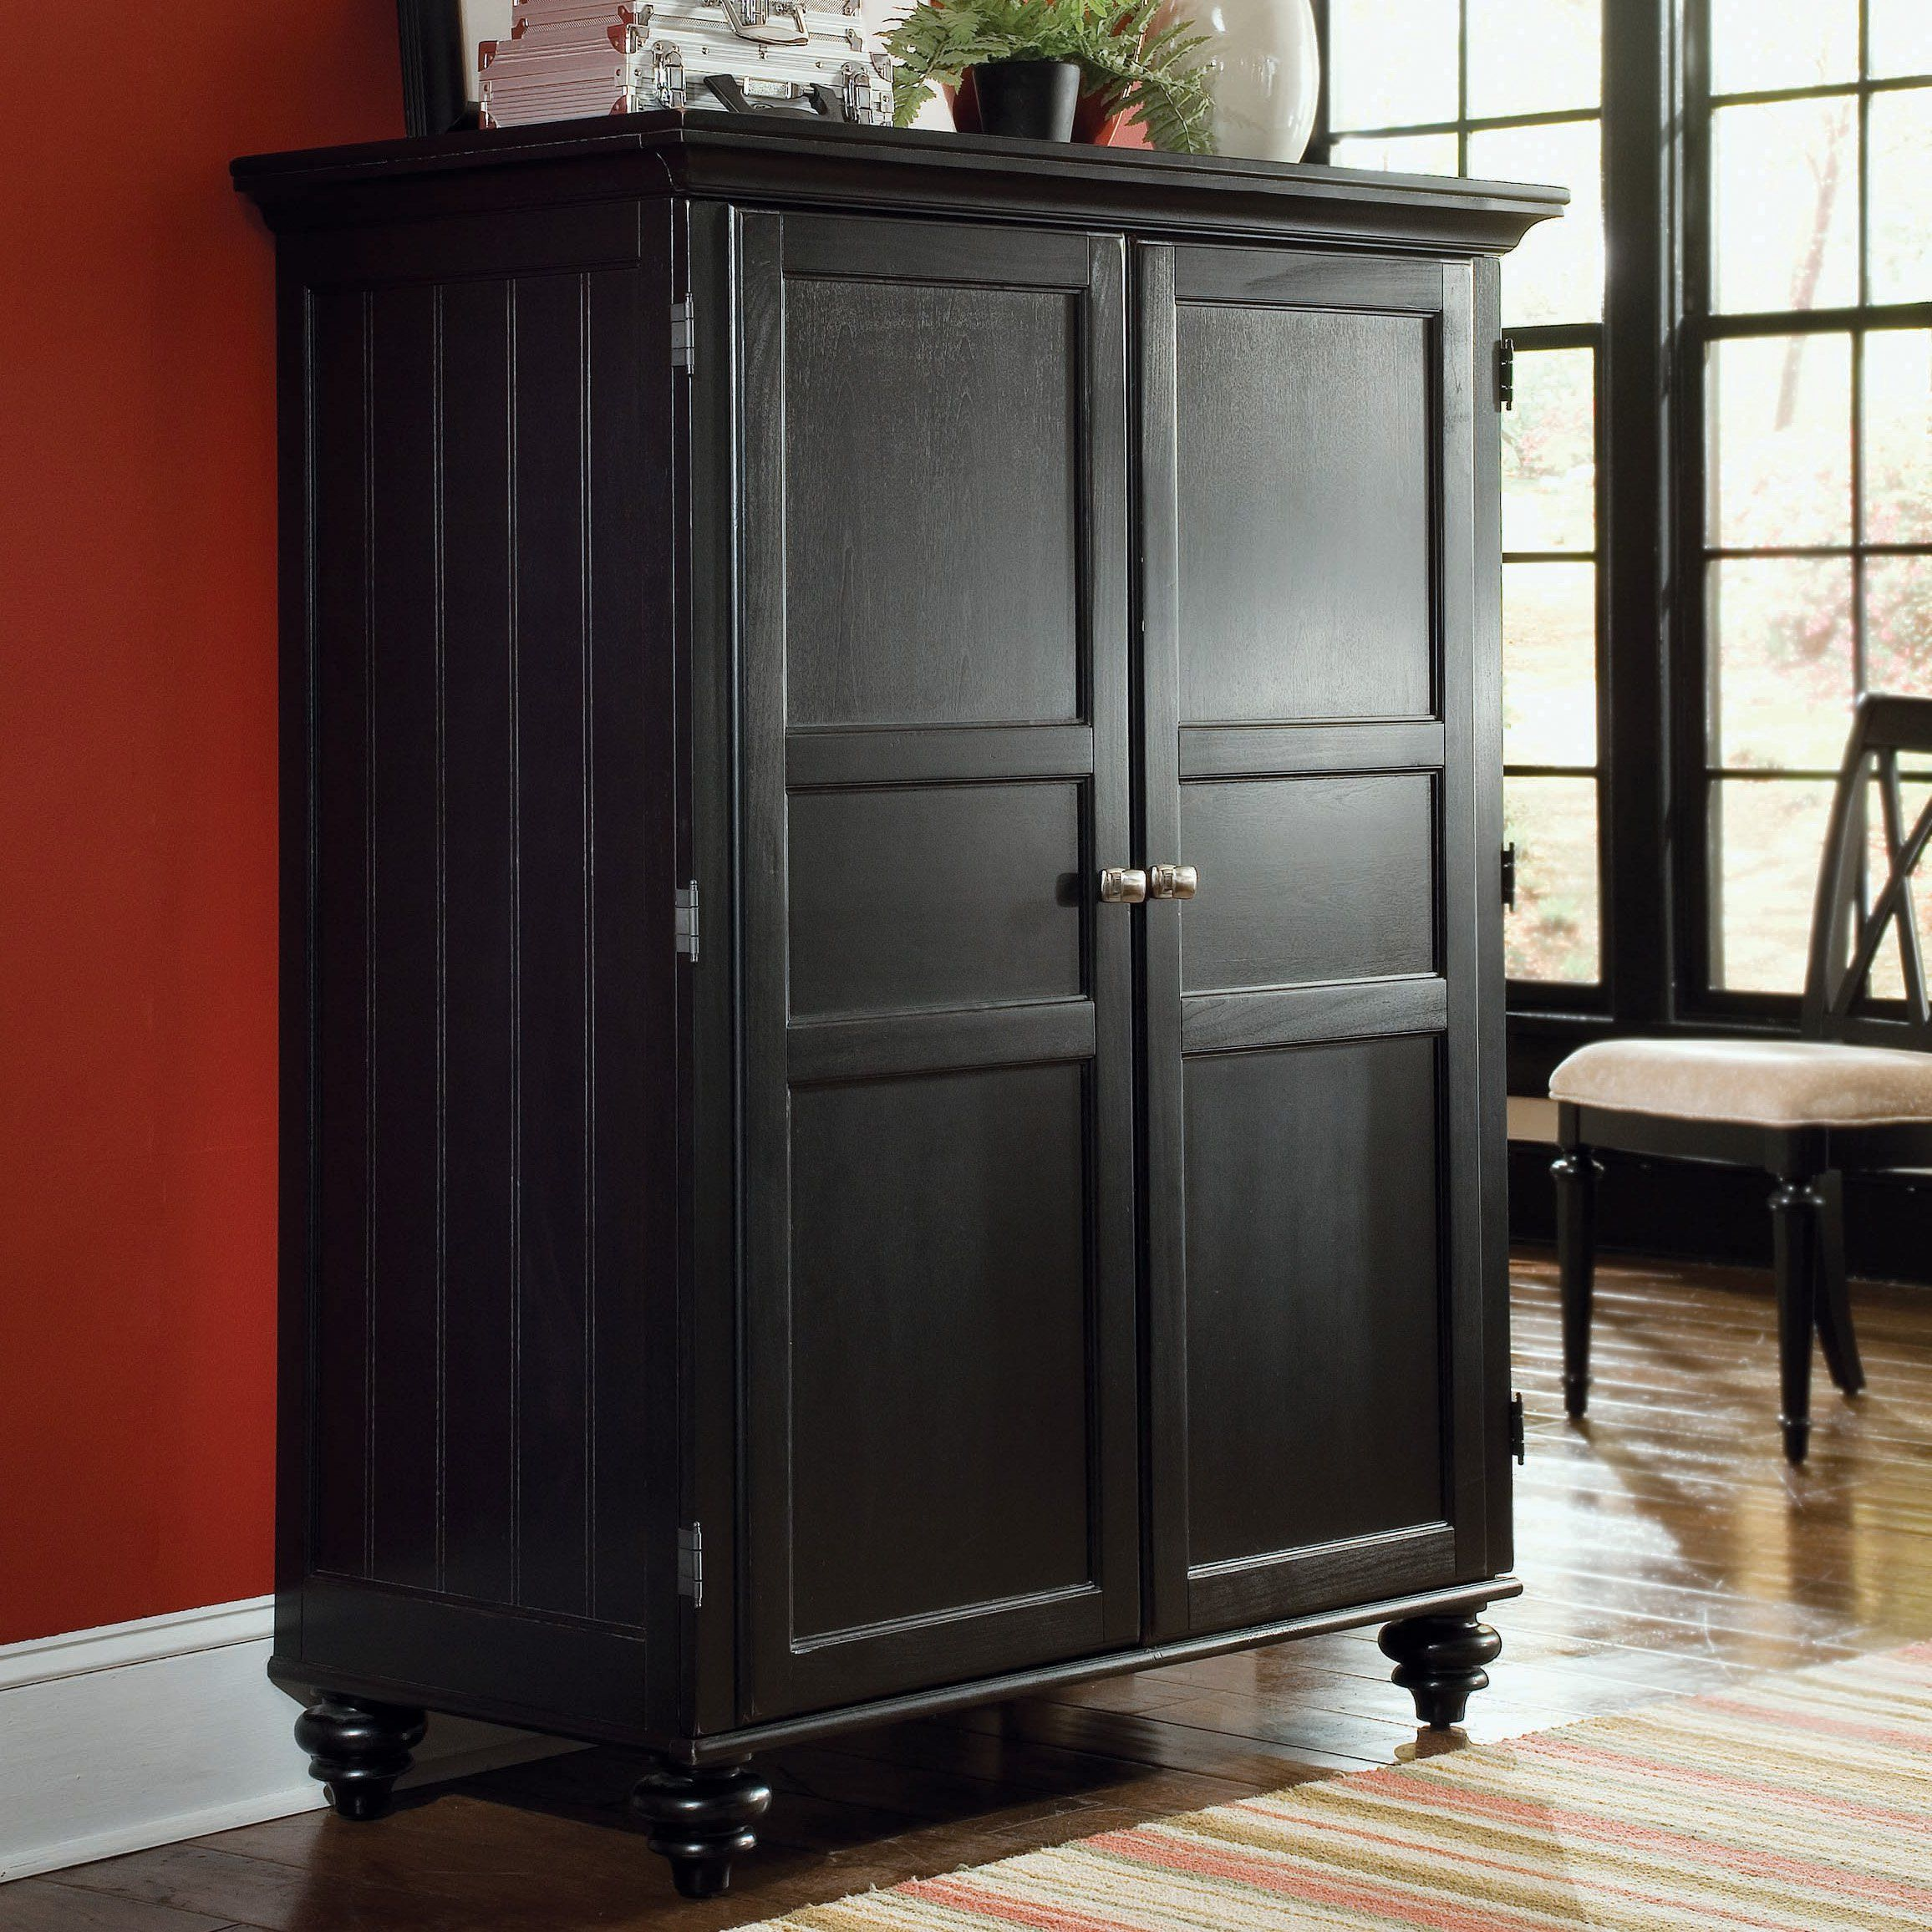 High Quality American Drew Camden Computer Armoire   Black   Storage, Style, And  Sophistication. The